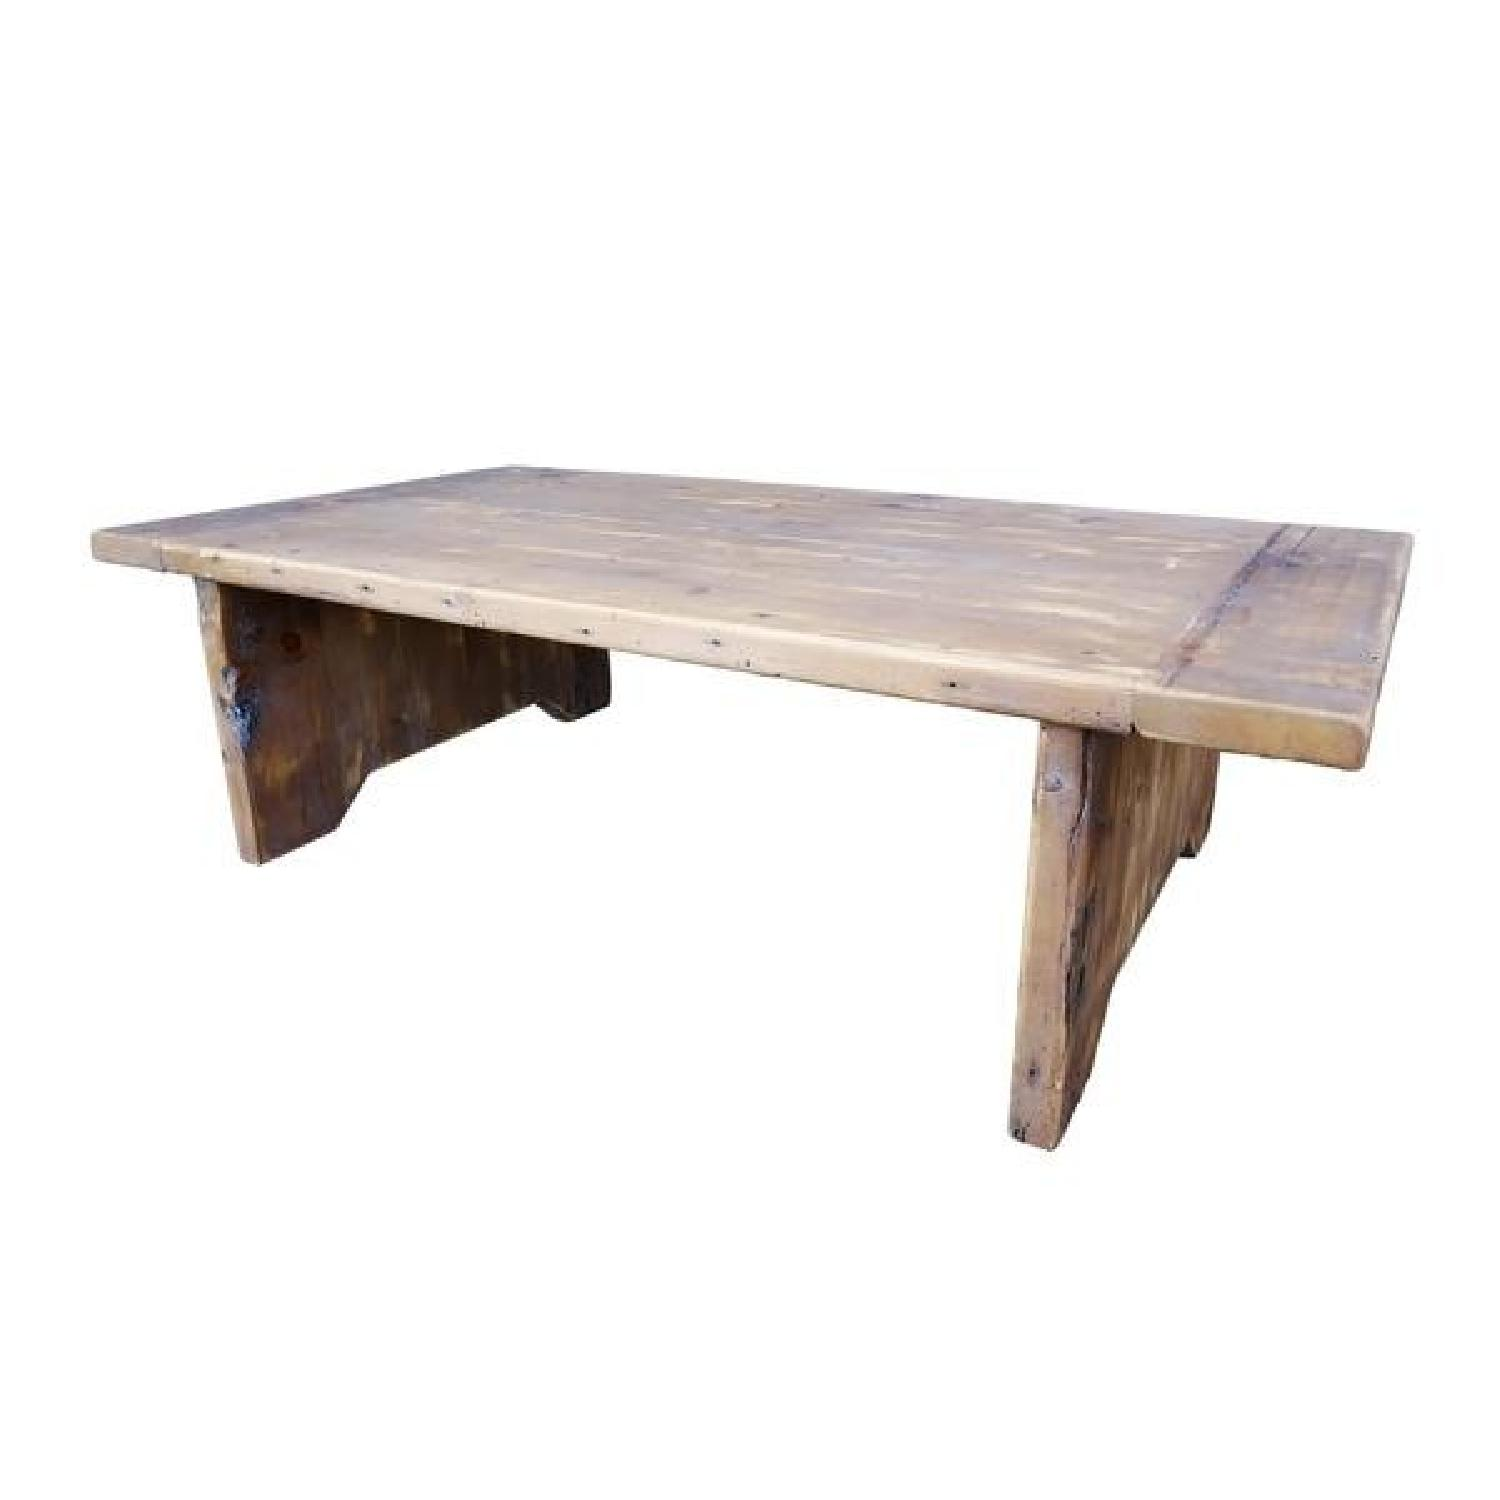 Darvo Reclaimed Wood Rustic Coffee Table Distressed Patina